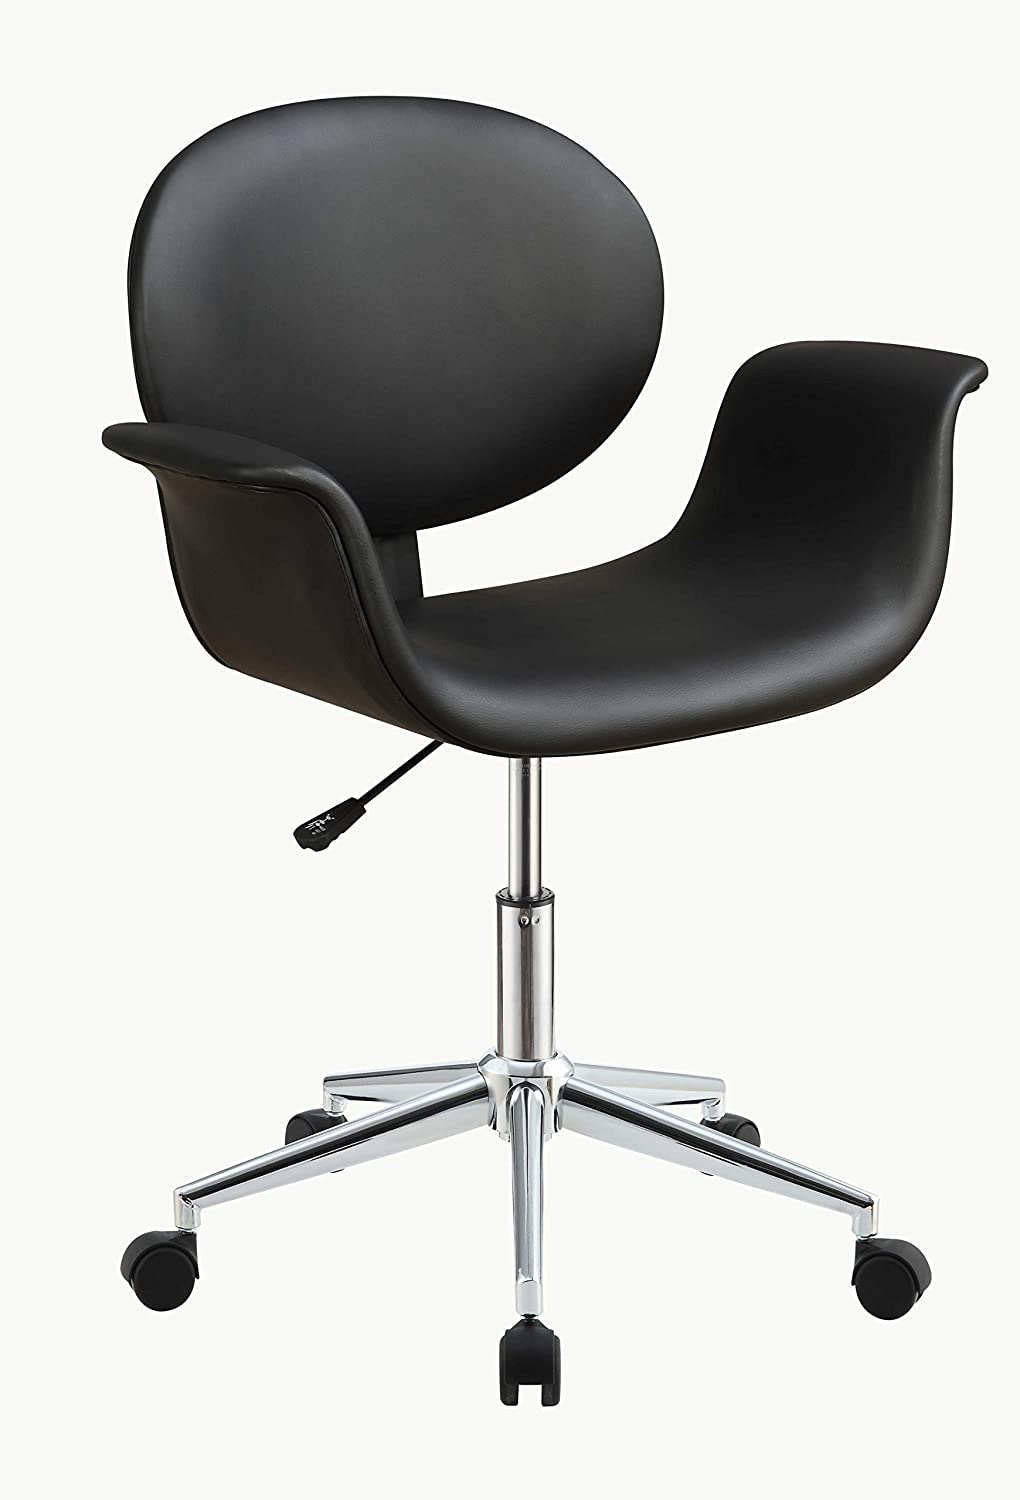 HomeRoots Furniture 286620-OT Chairs, Multicolor